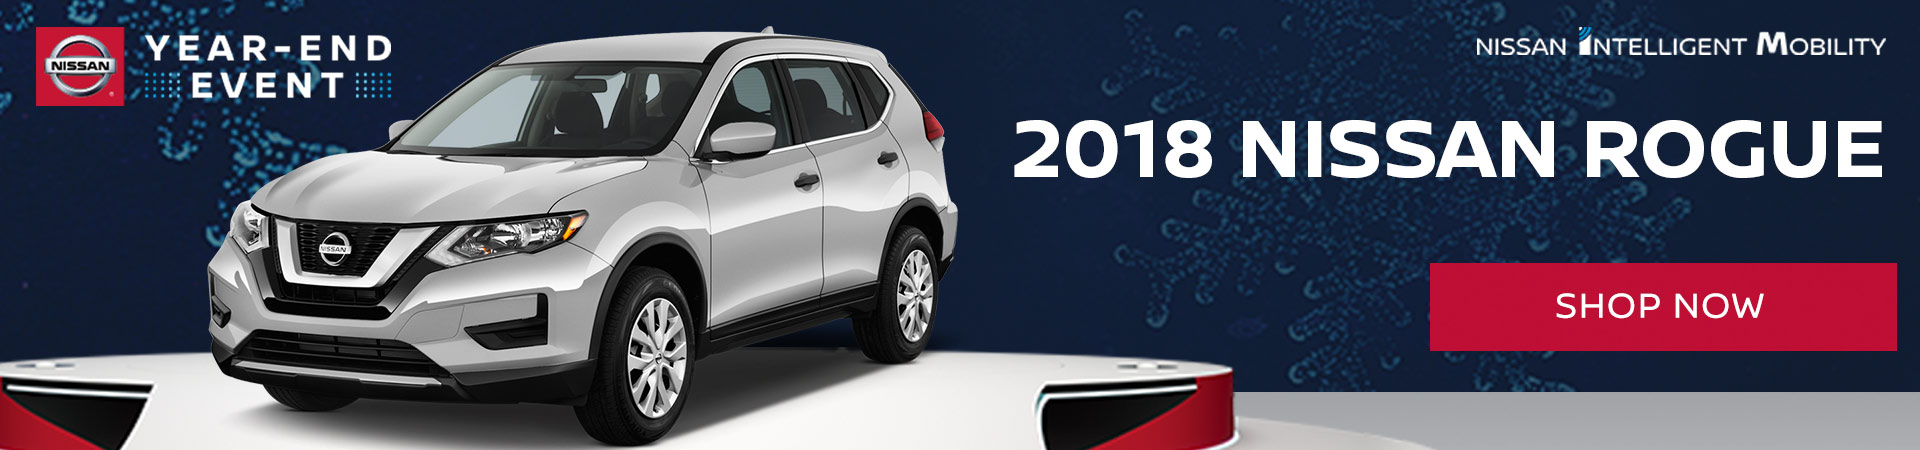 Year End Nissan Rogue